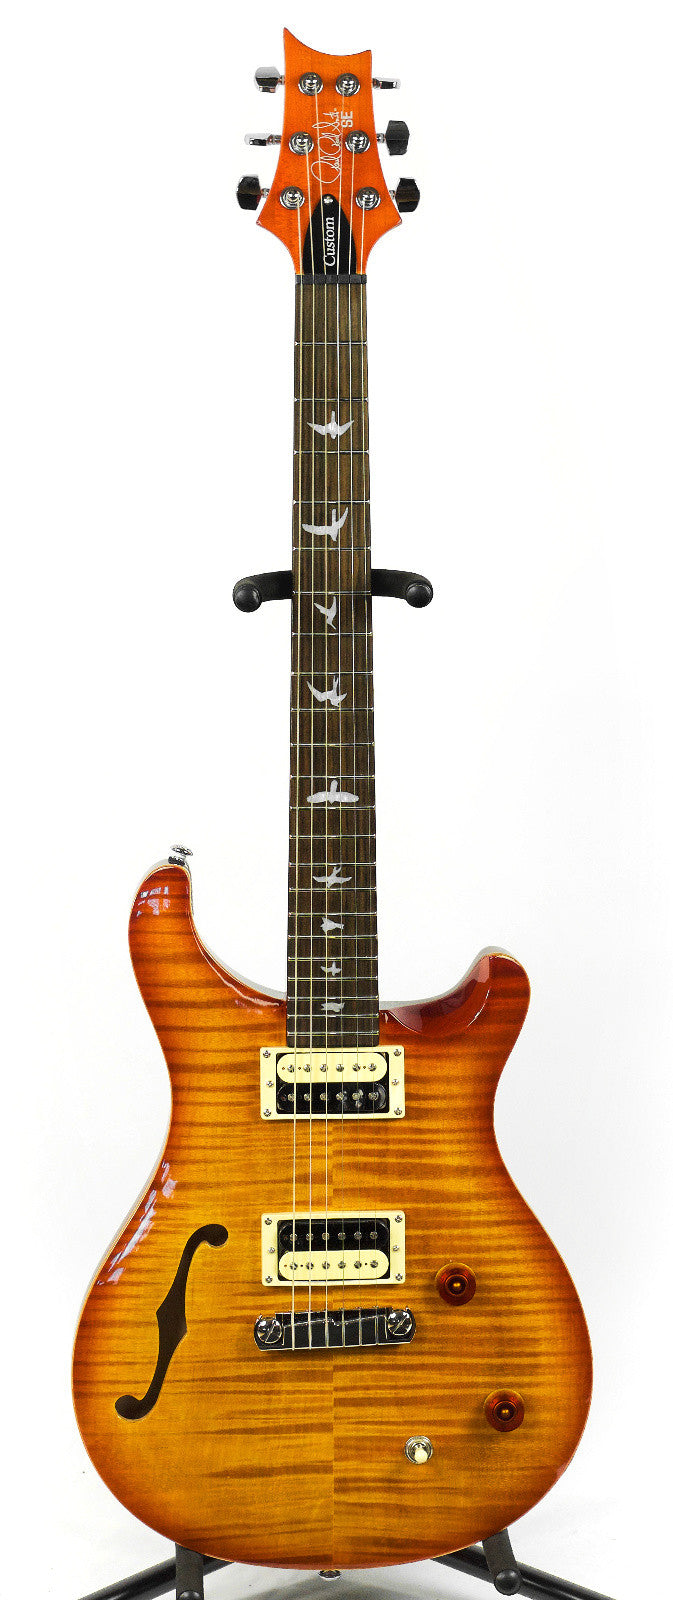 PRS SE Custom 22 Semi-Hollow Vintage Sunburst Electric Guitar